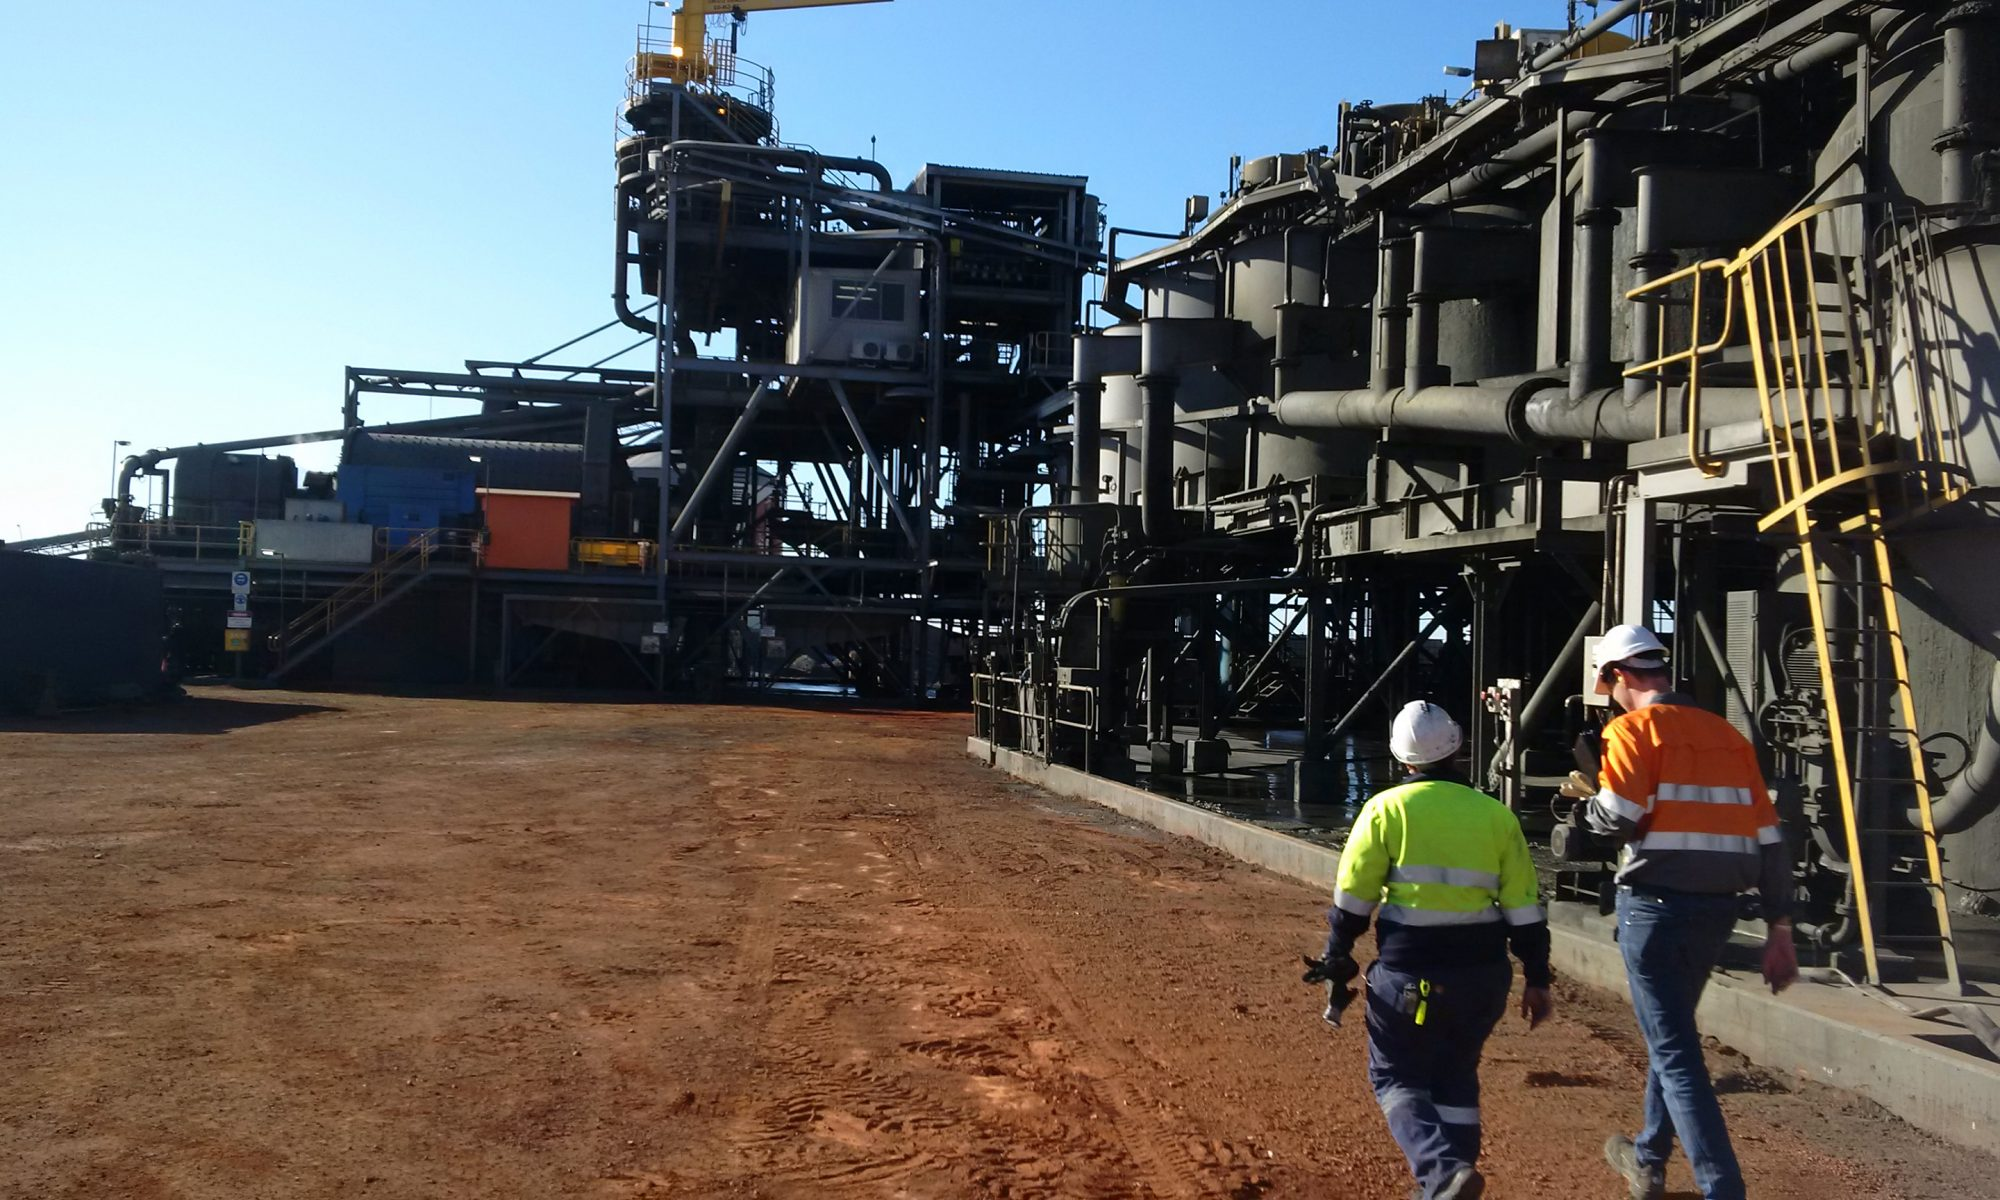 Global Pumps Sandfire Resources DeGrussa Copper-Gold Mine in Western Australia Contact Global Group